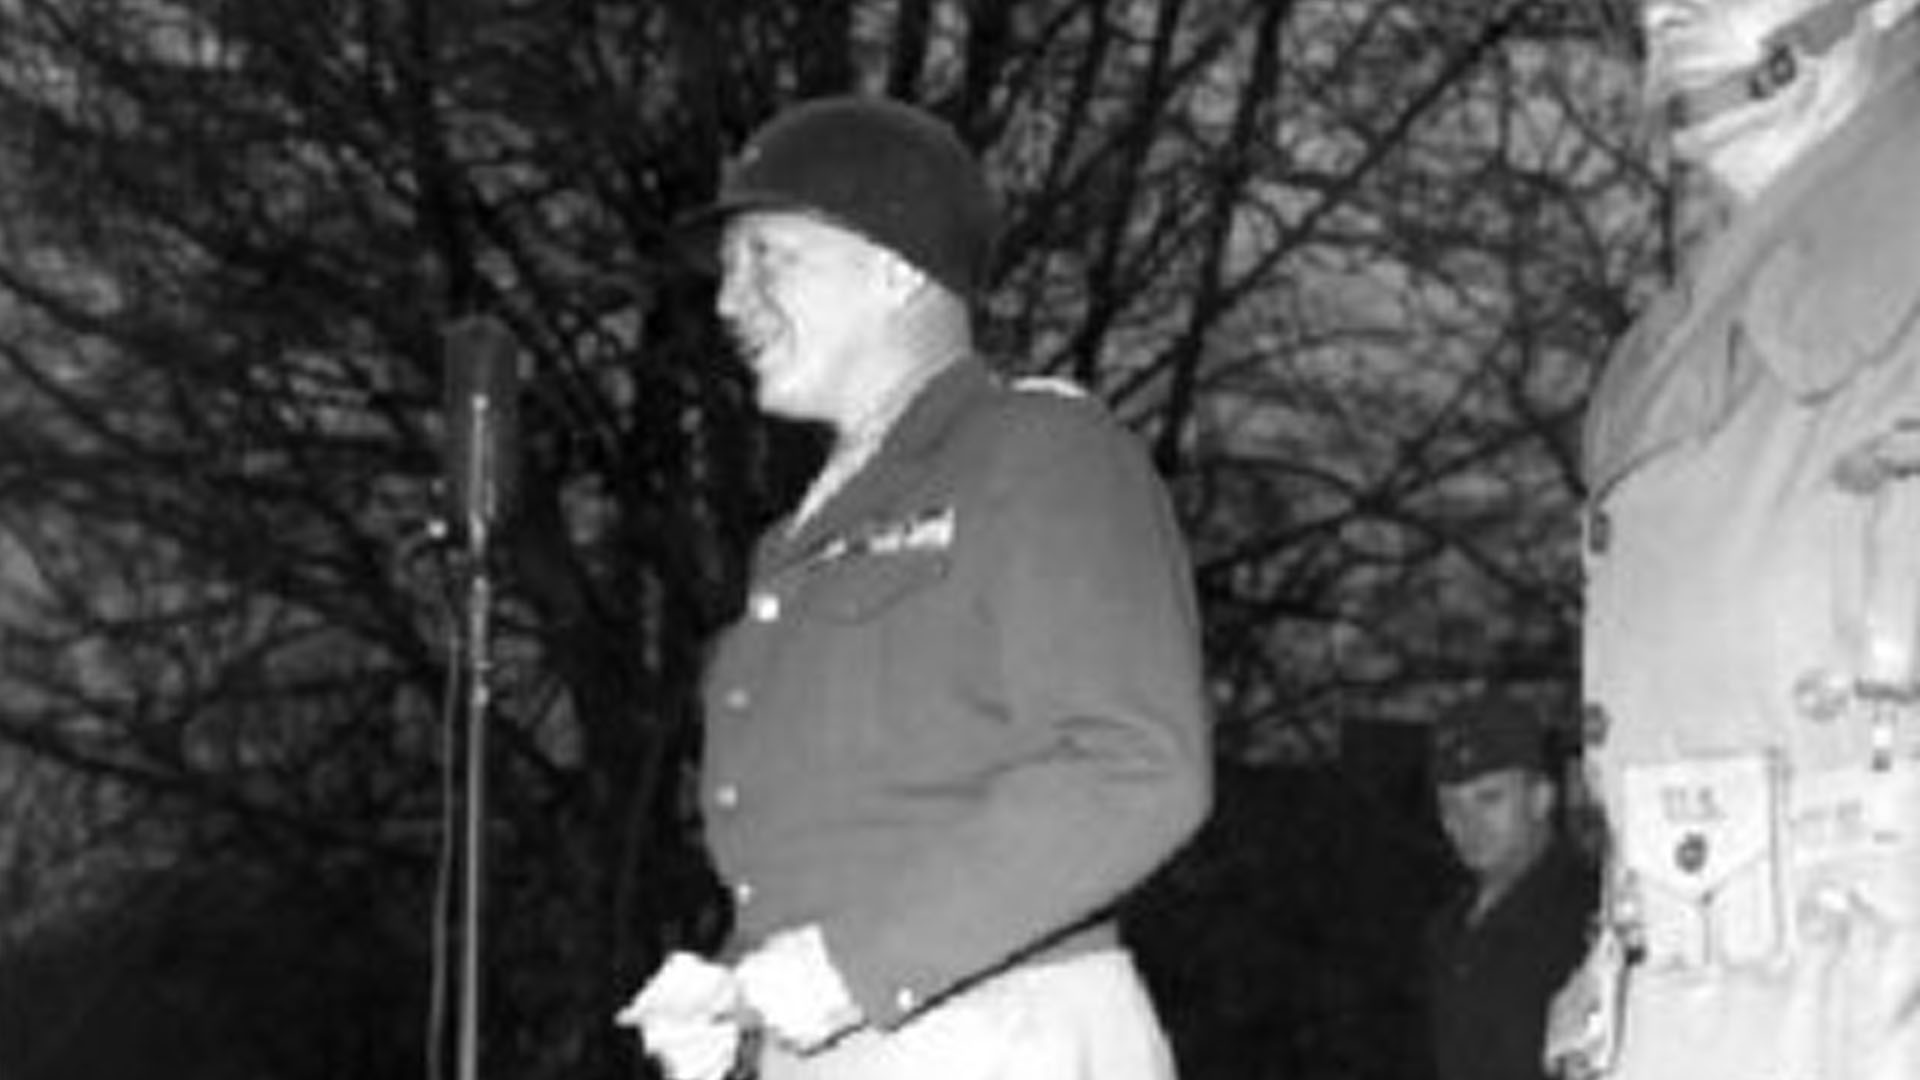 General Patton's speech on The Mall, Armagh, Co. Armagh